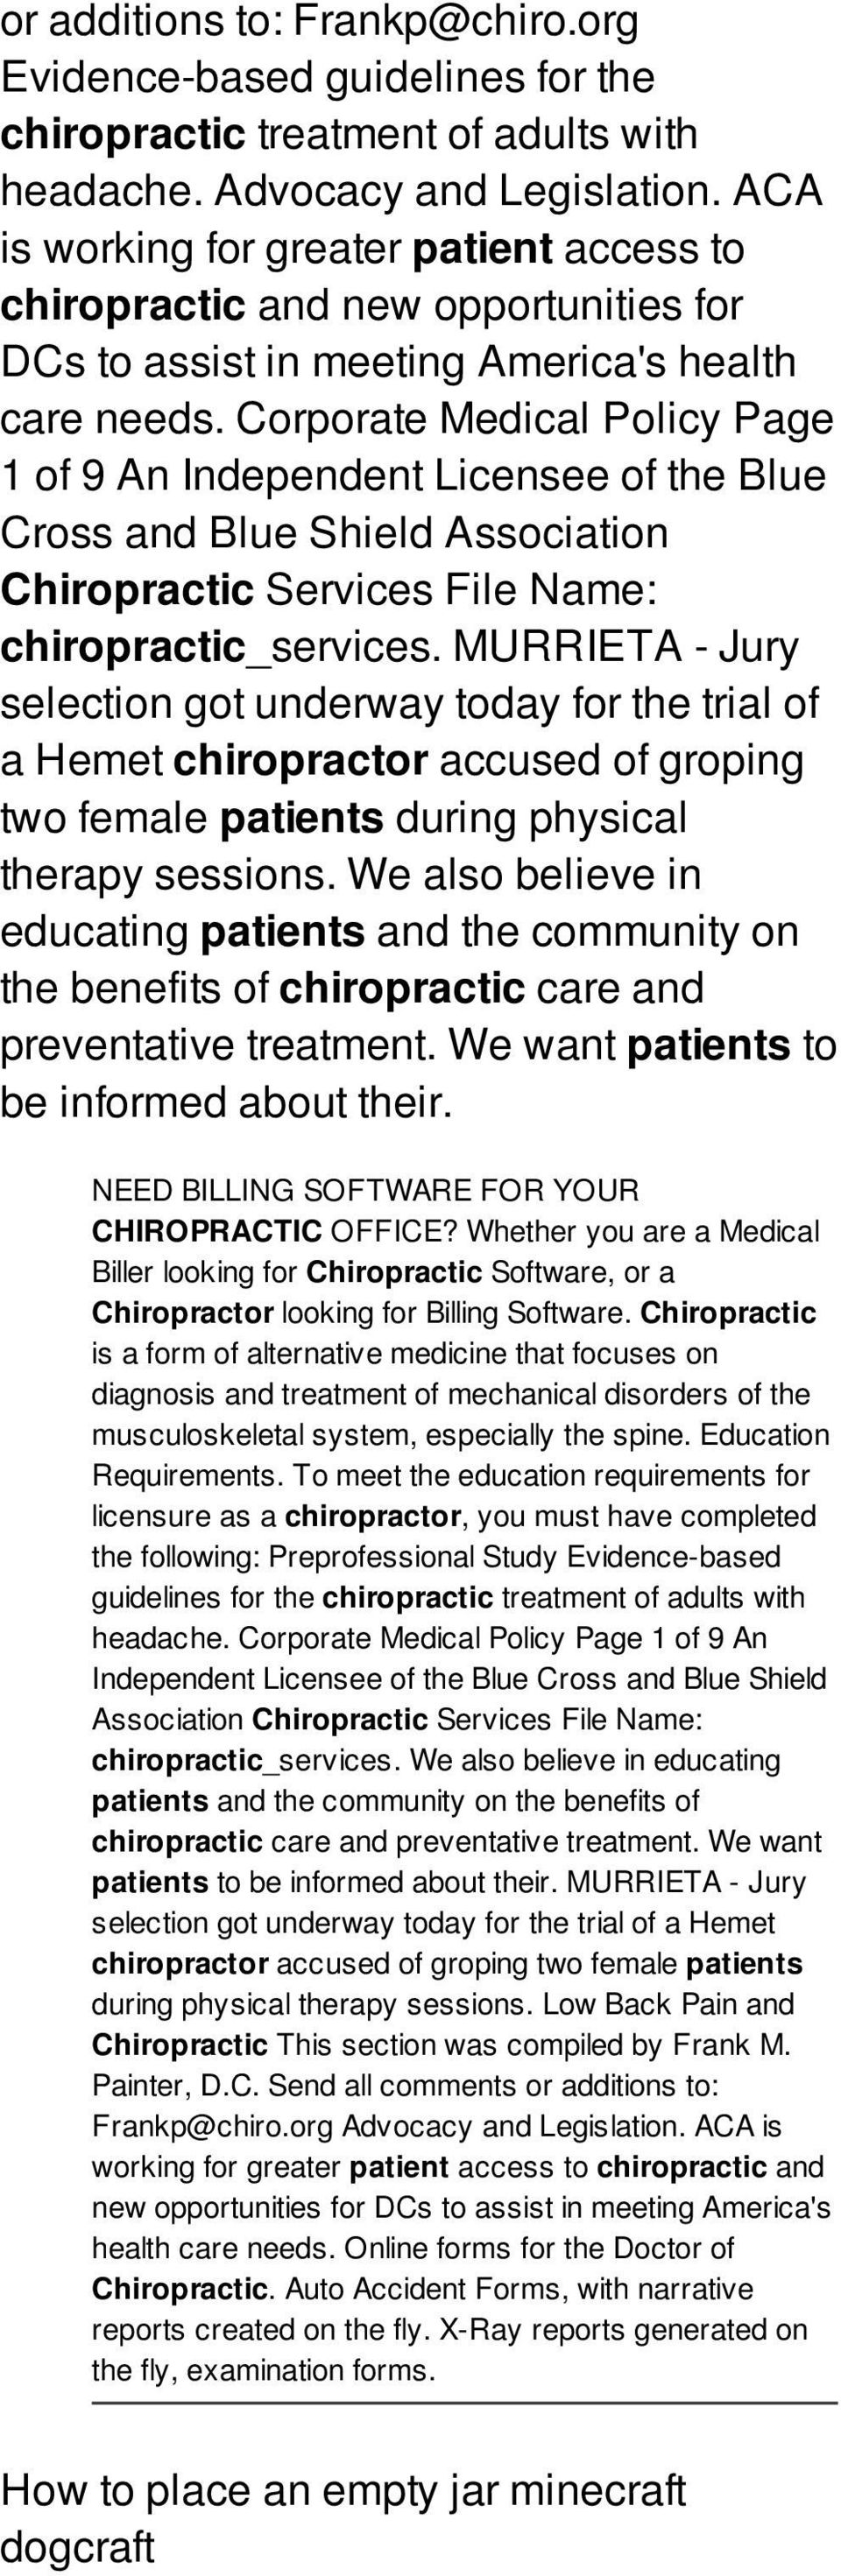 Corporate Medical Policy Page 1 of 9 An Independent Licensee of the Blue Cross and Blue Shield Association Chiropractic Services File Name: chiropractic_services.